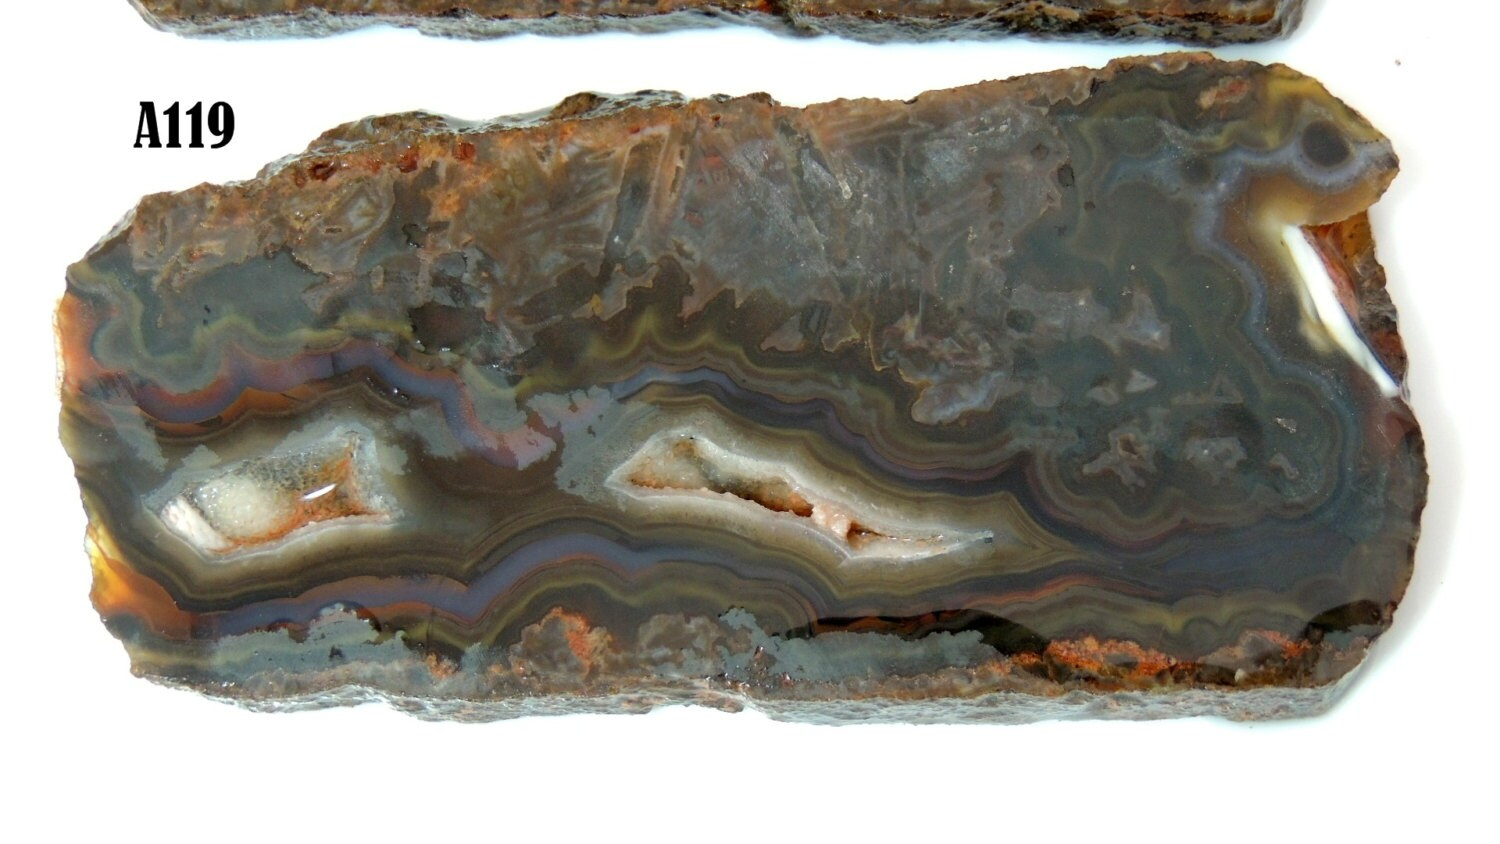 Turkish Agate Slab A119 Druzy 74 Grams Grade A Lapidary